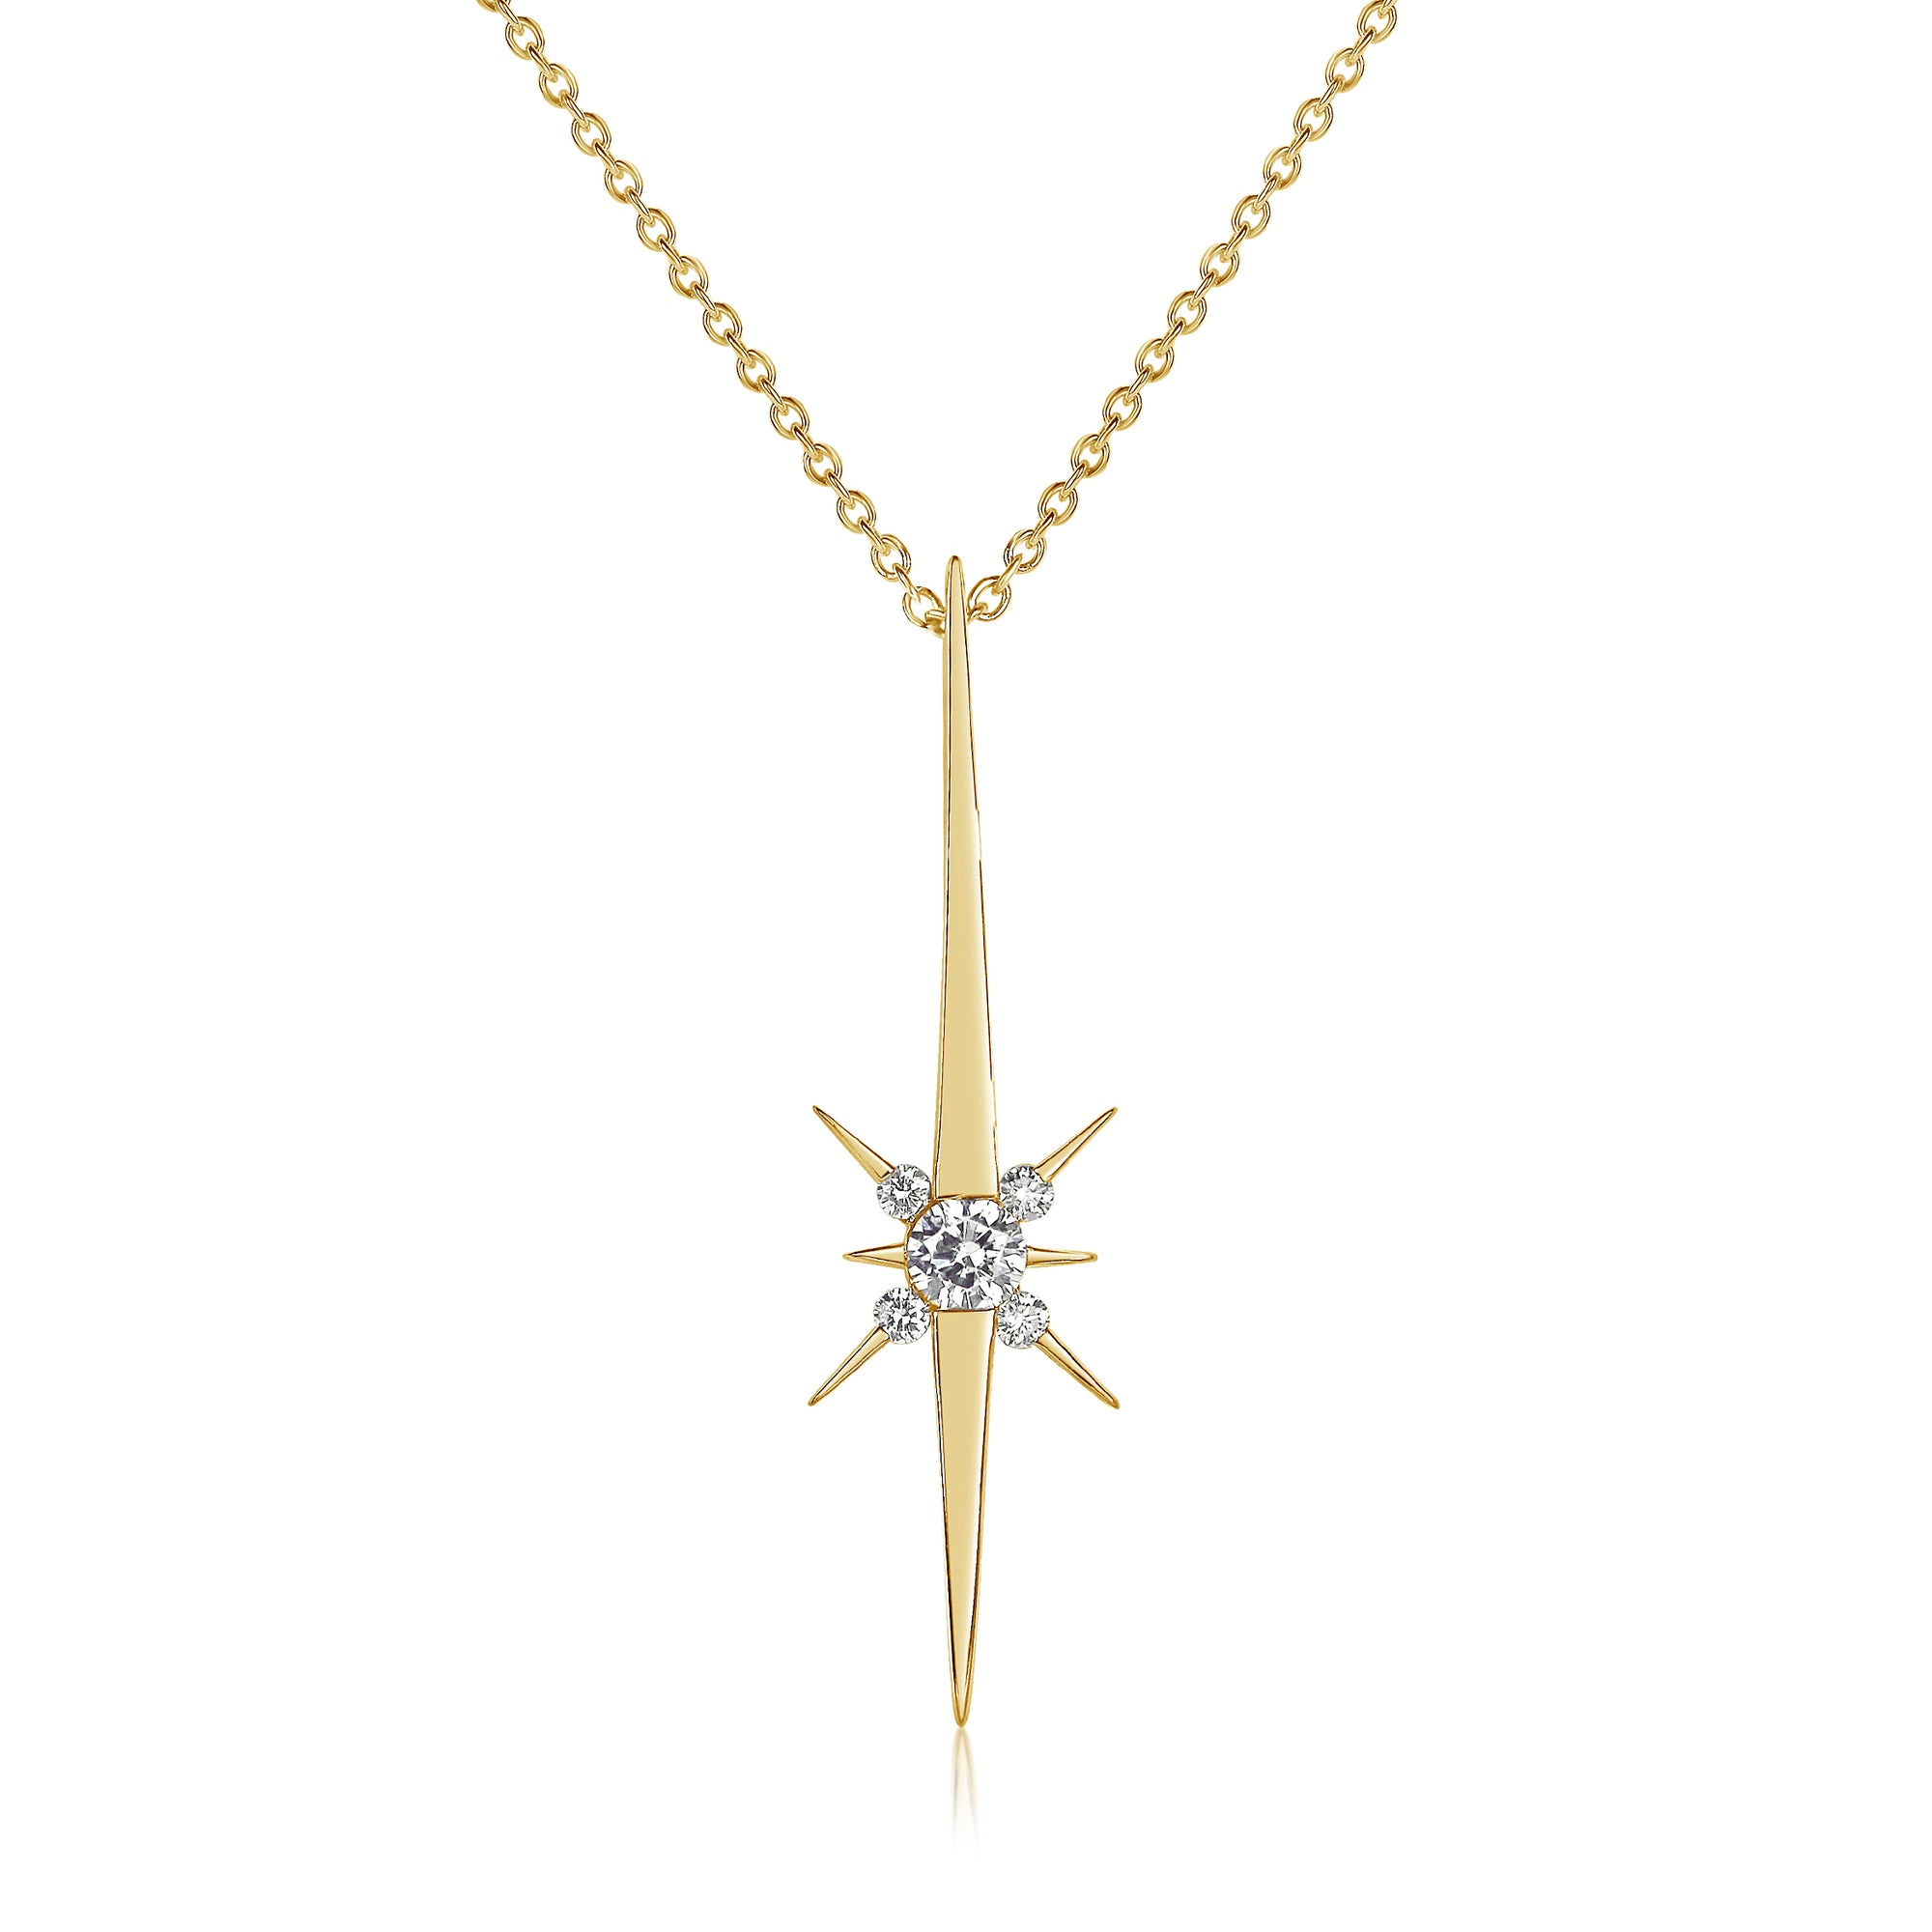 michelle bmjnyc star polinsky barbara by diamond designed products north champagne necklace pendant gold